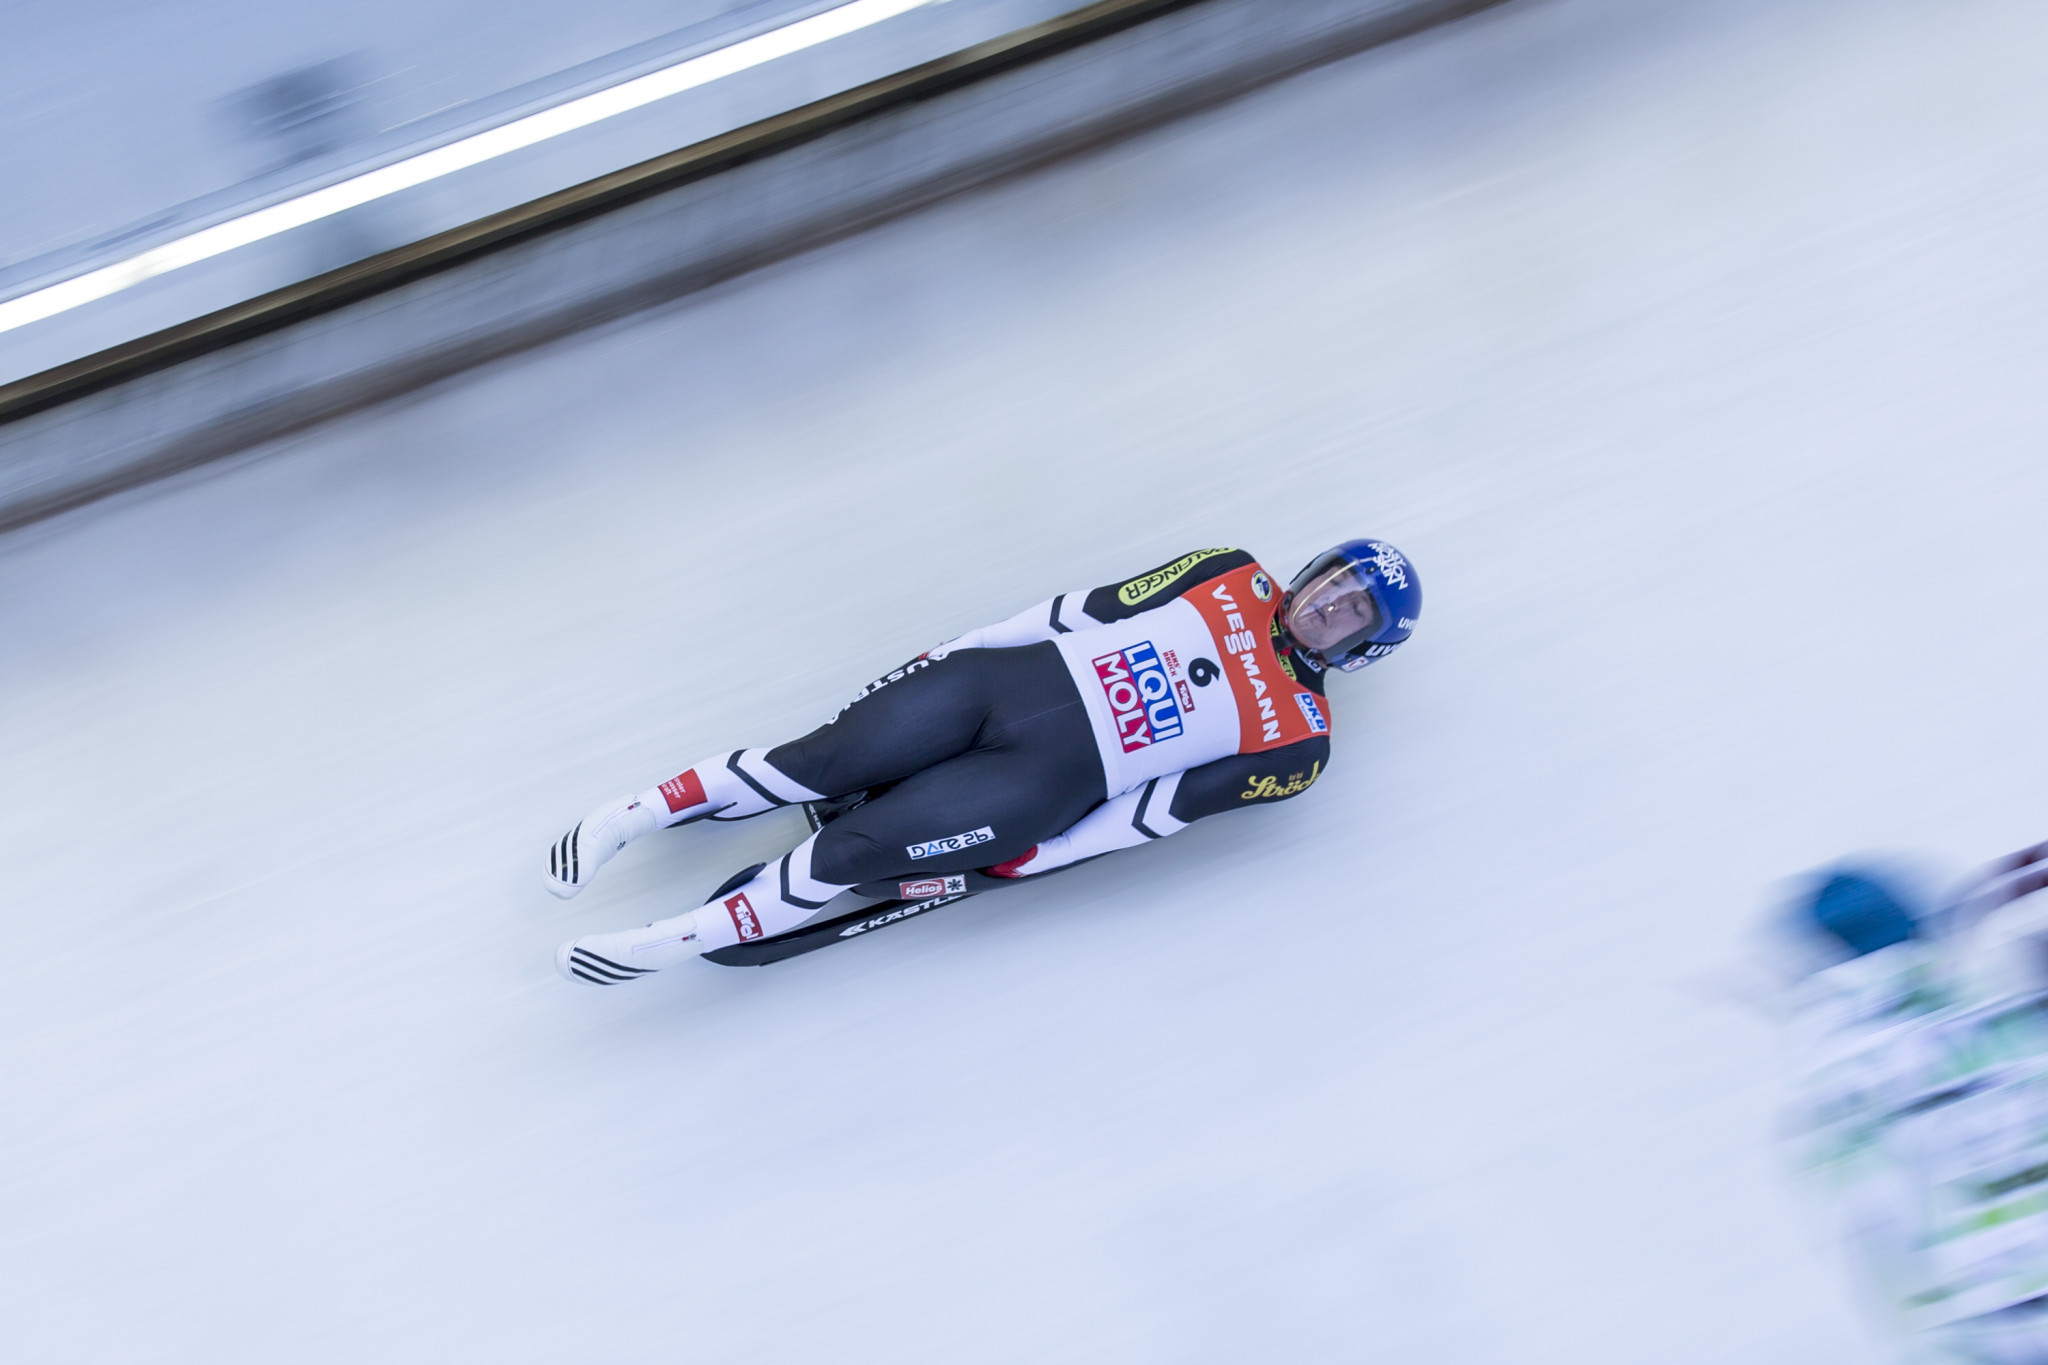 Wolfgang Kindl of Austria will look to extend his lead in the men's singles at the Luge World Cup in Whistler this weekend ©Getty Images